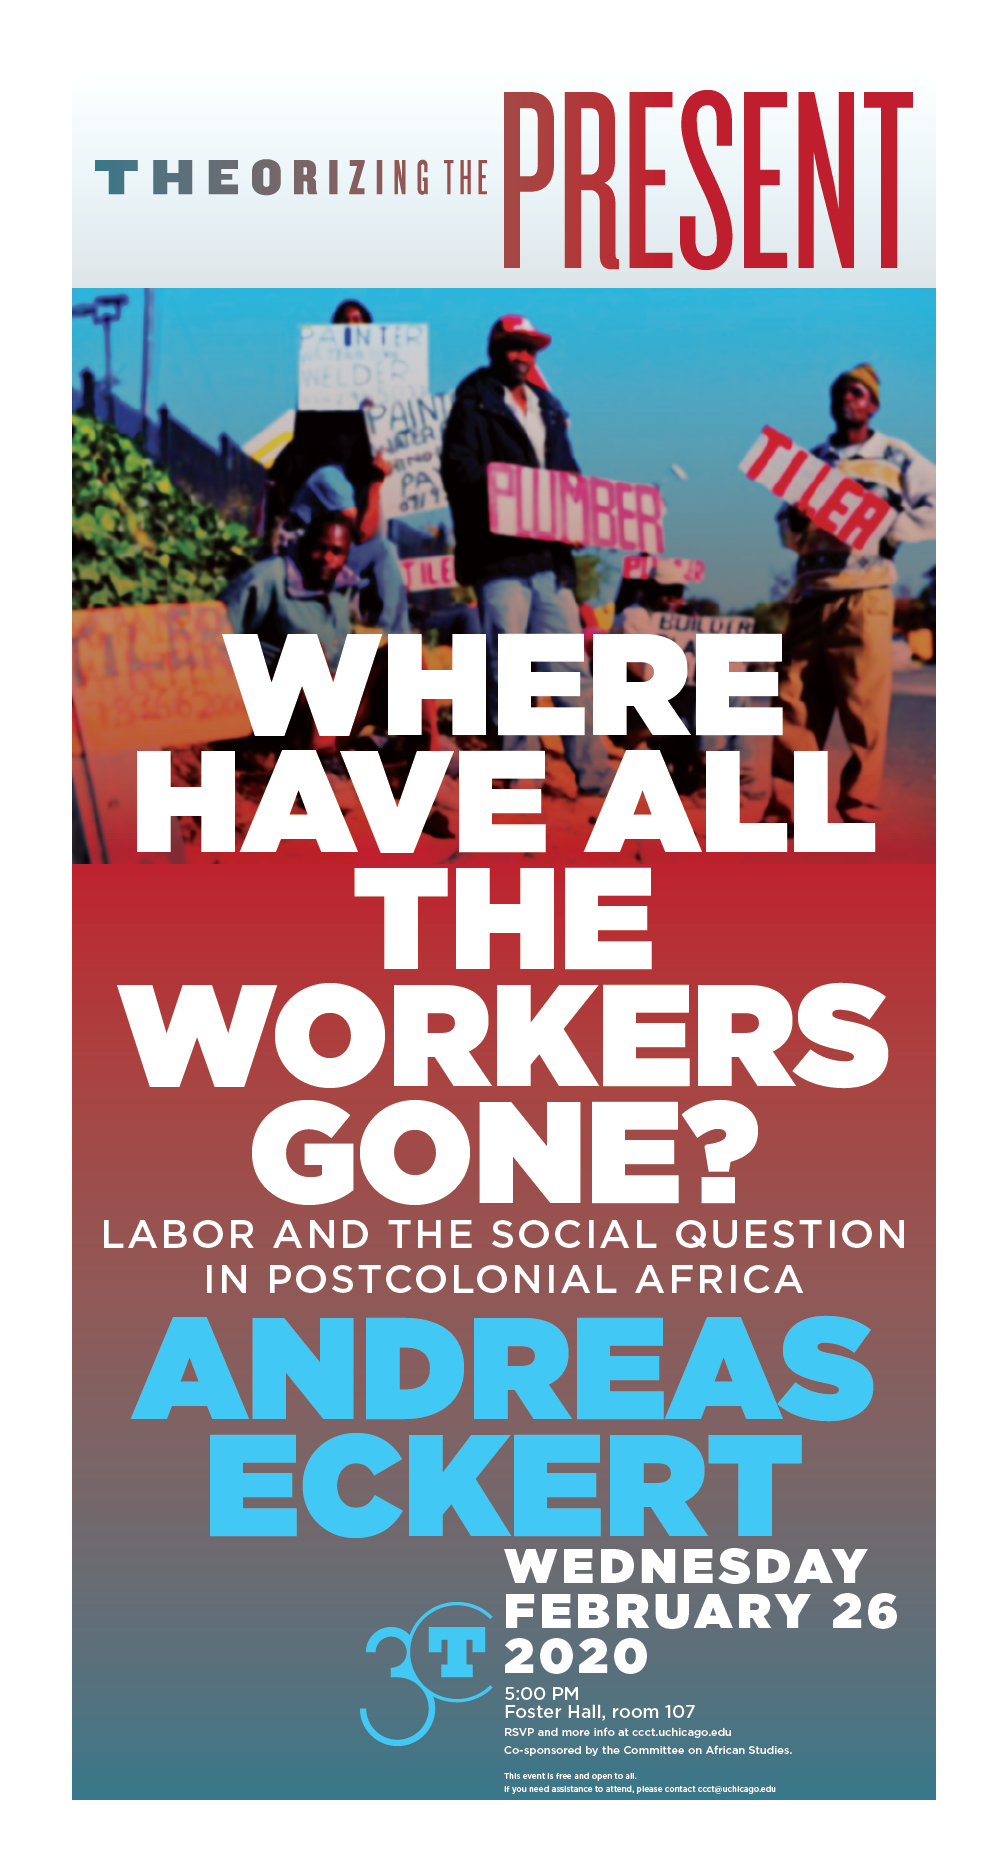 Andreas Eckert poster: Where Have All the Workers Gone?